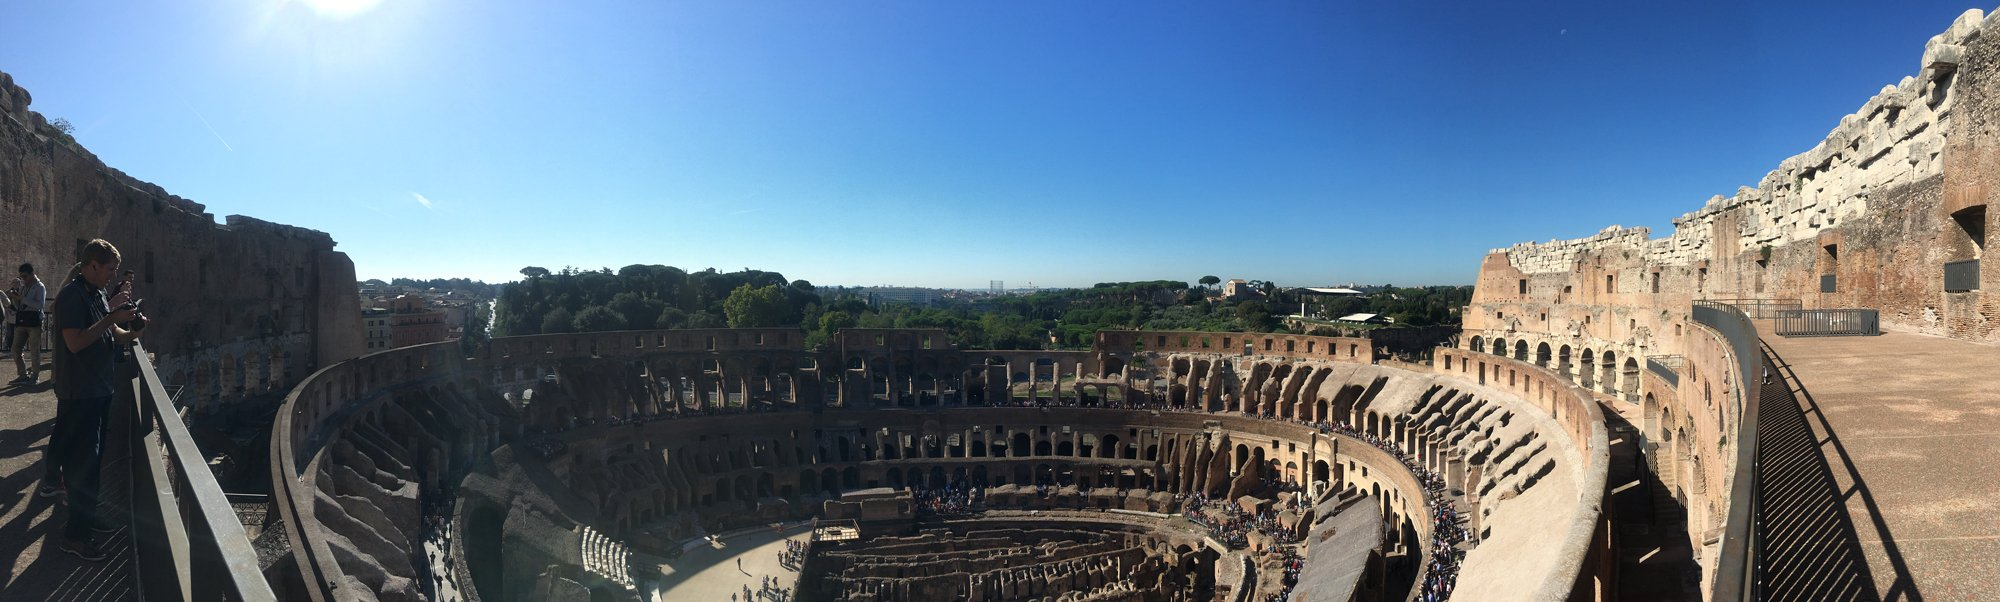 Colosseum Belvedere Panoramic views